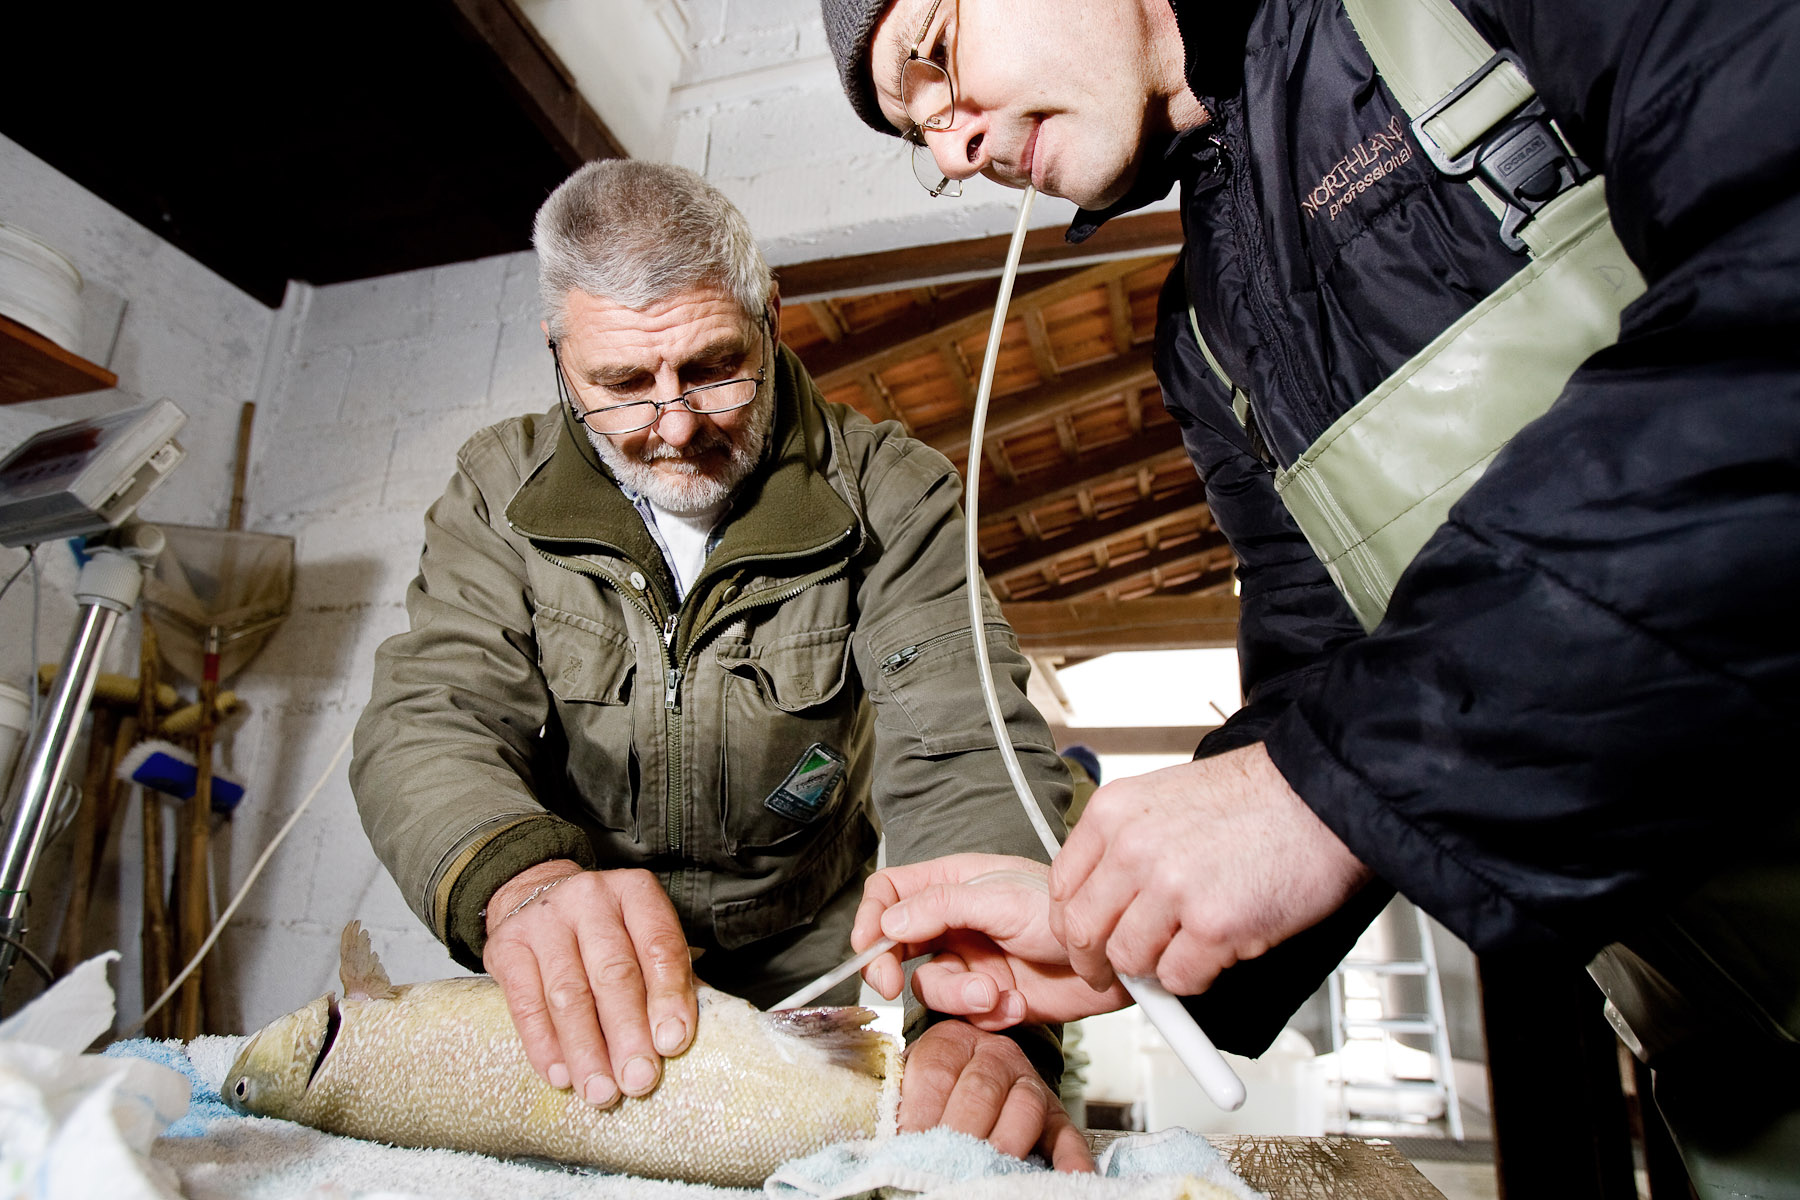 Dušan Jesenšek extracts semen from an adult male Marble trout in the Tolmin fish farm. When they later fertilize the eggs, they use semen from several males fish to ensure successful spawning.